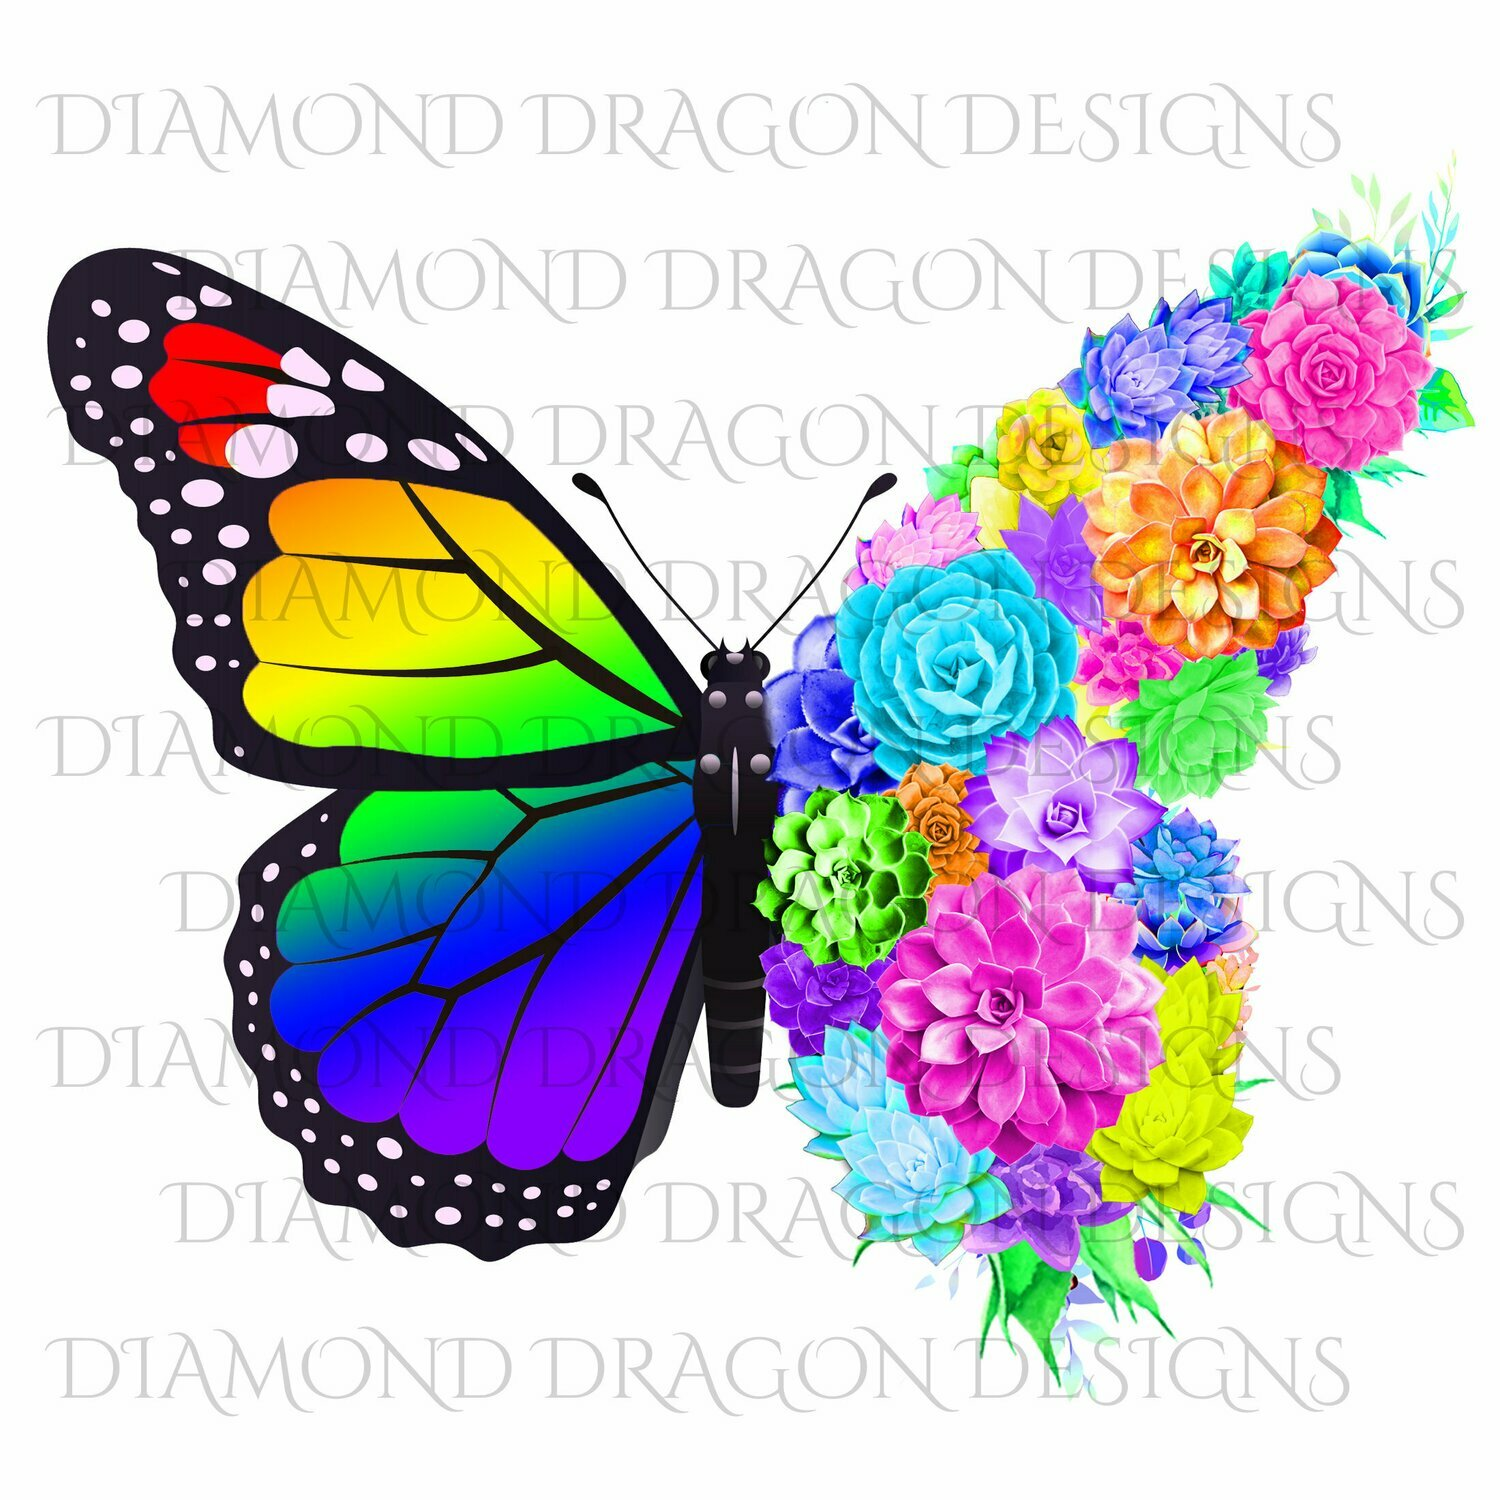 Butterflies - Succulent Butterfly, Monarch Butterfly, Rainbow, Watercolor Butterfly, Waterslide